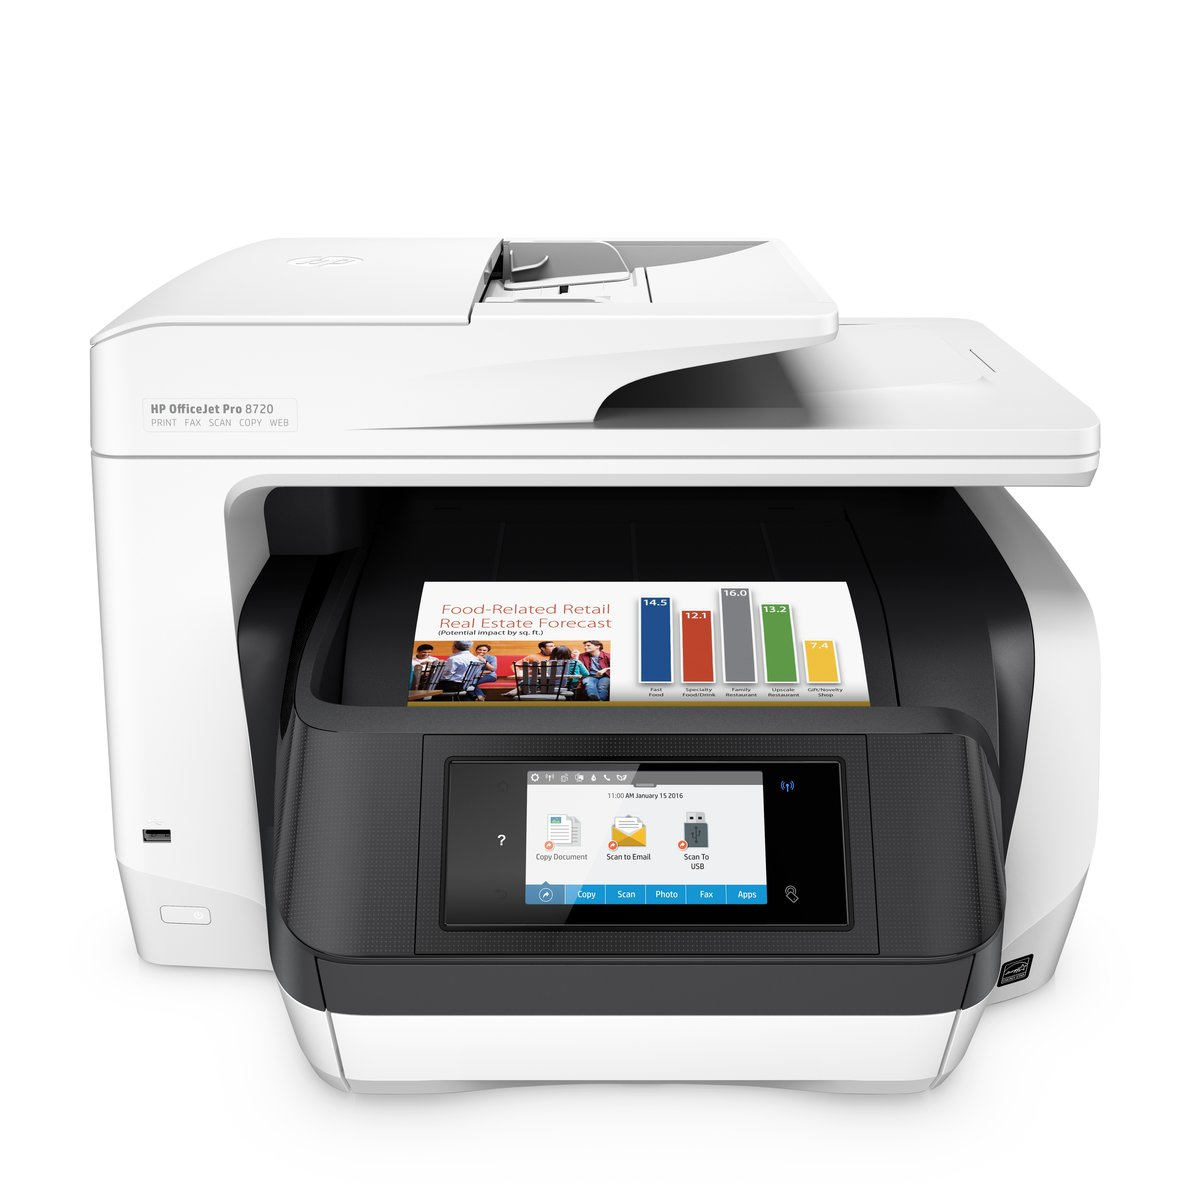 93659d8b HP OfficeJet Pro 8720 All-in-One Wireless Printer with Mobile Printing,  Instant Ink ready (M9L75A) - Newegg.com